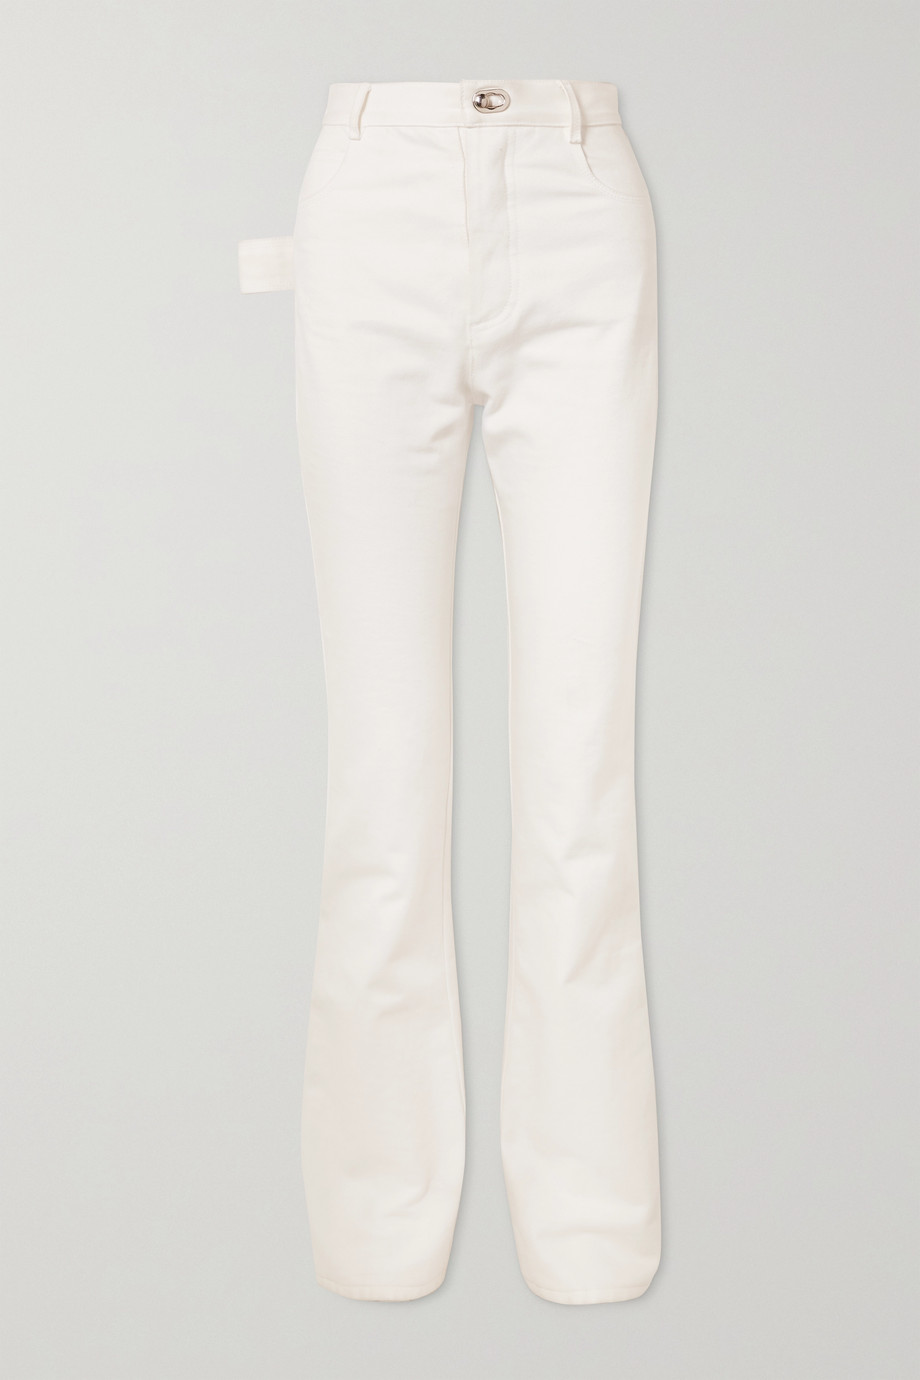 Bottega Veneta High-rise slim-leg jeans